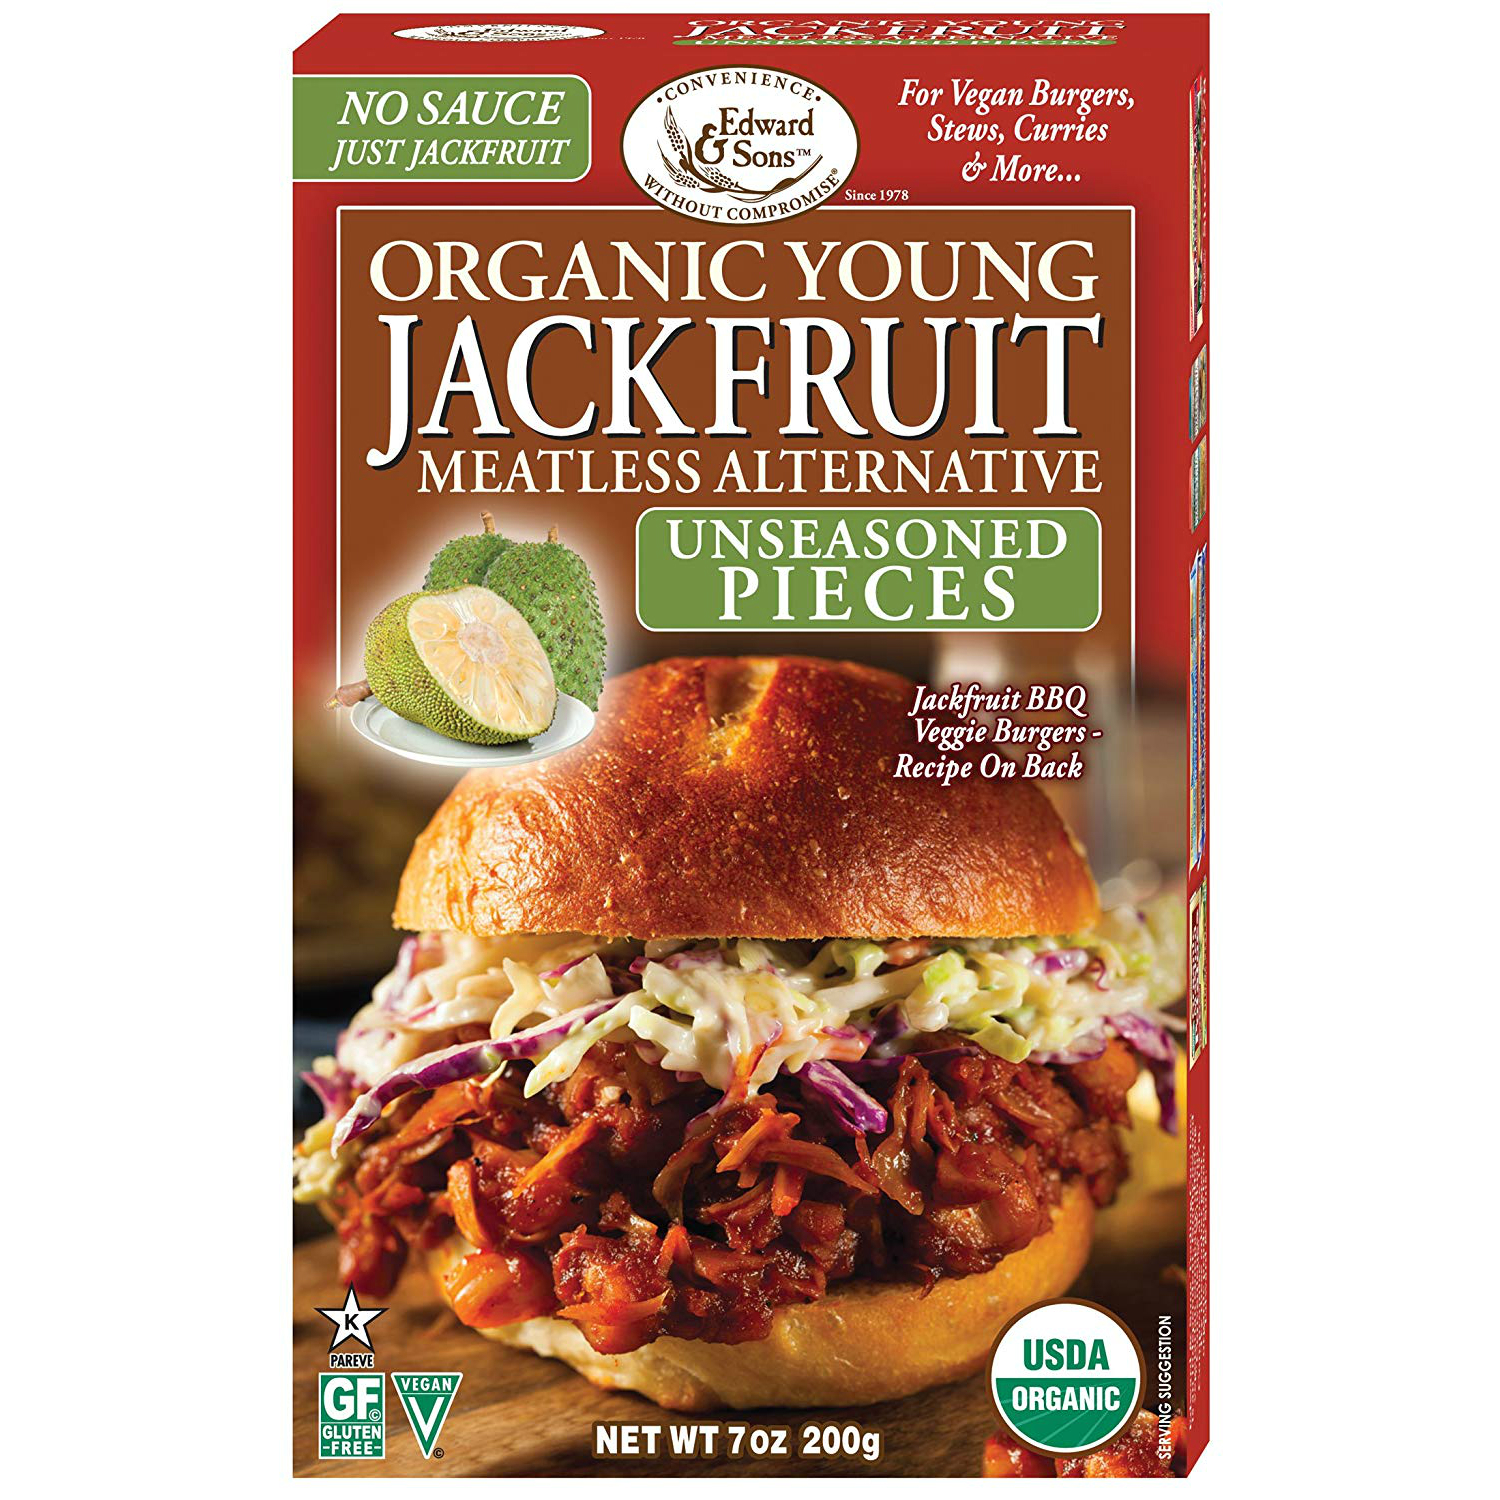 lectin free shopping list - jackfruit